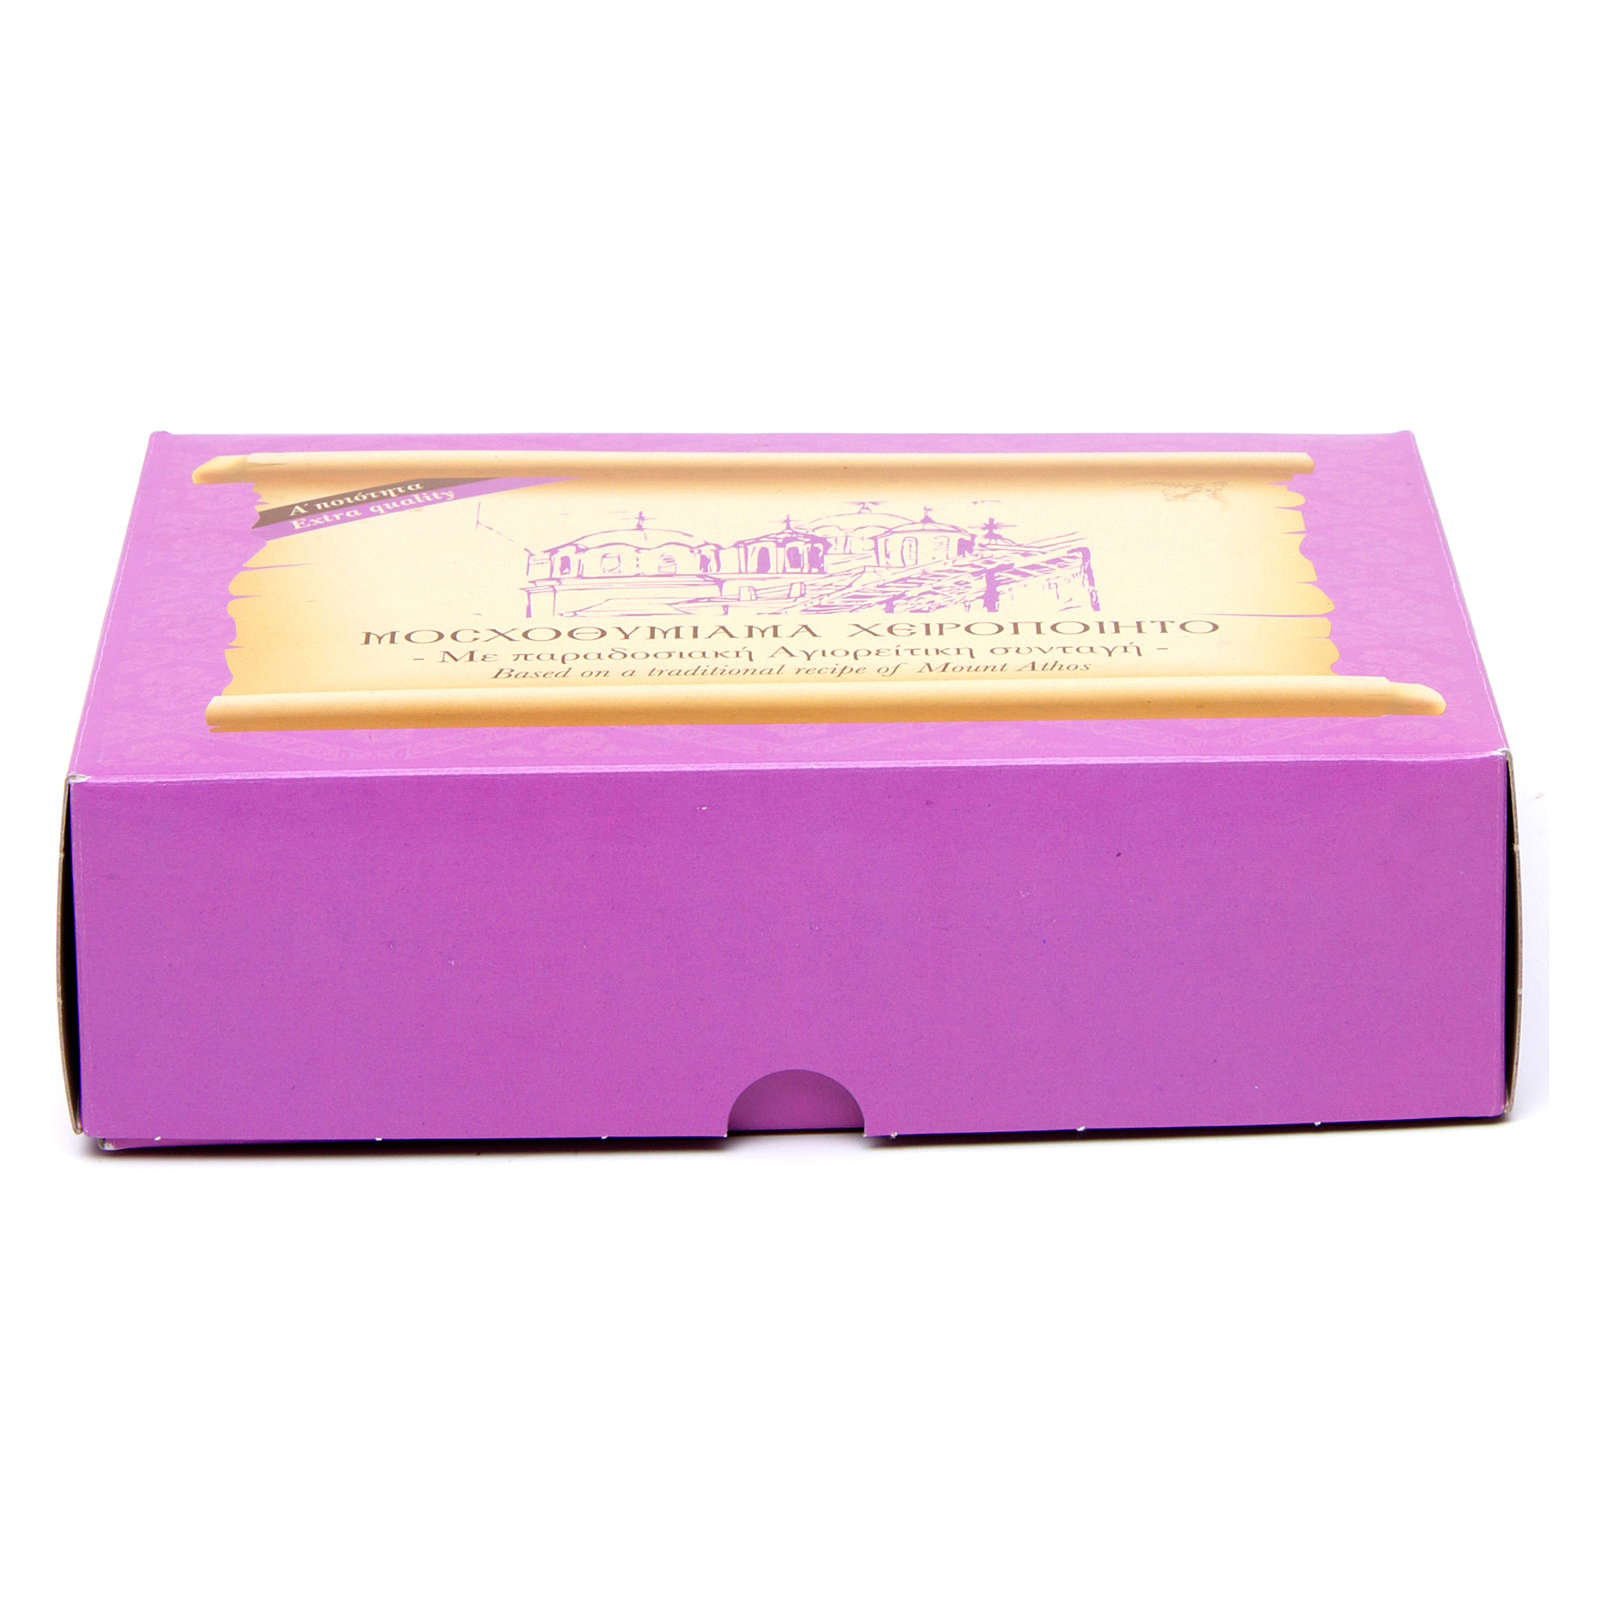 Oenothera-scented Greek incense 1 kg 3